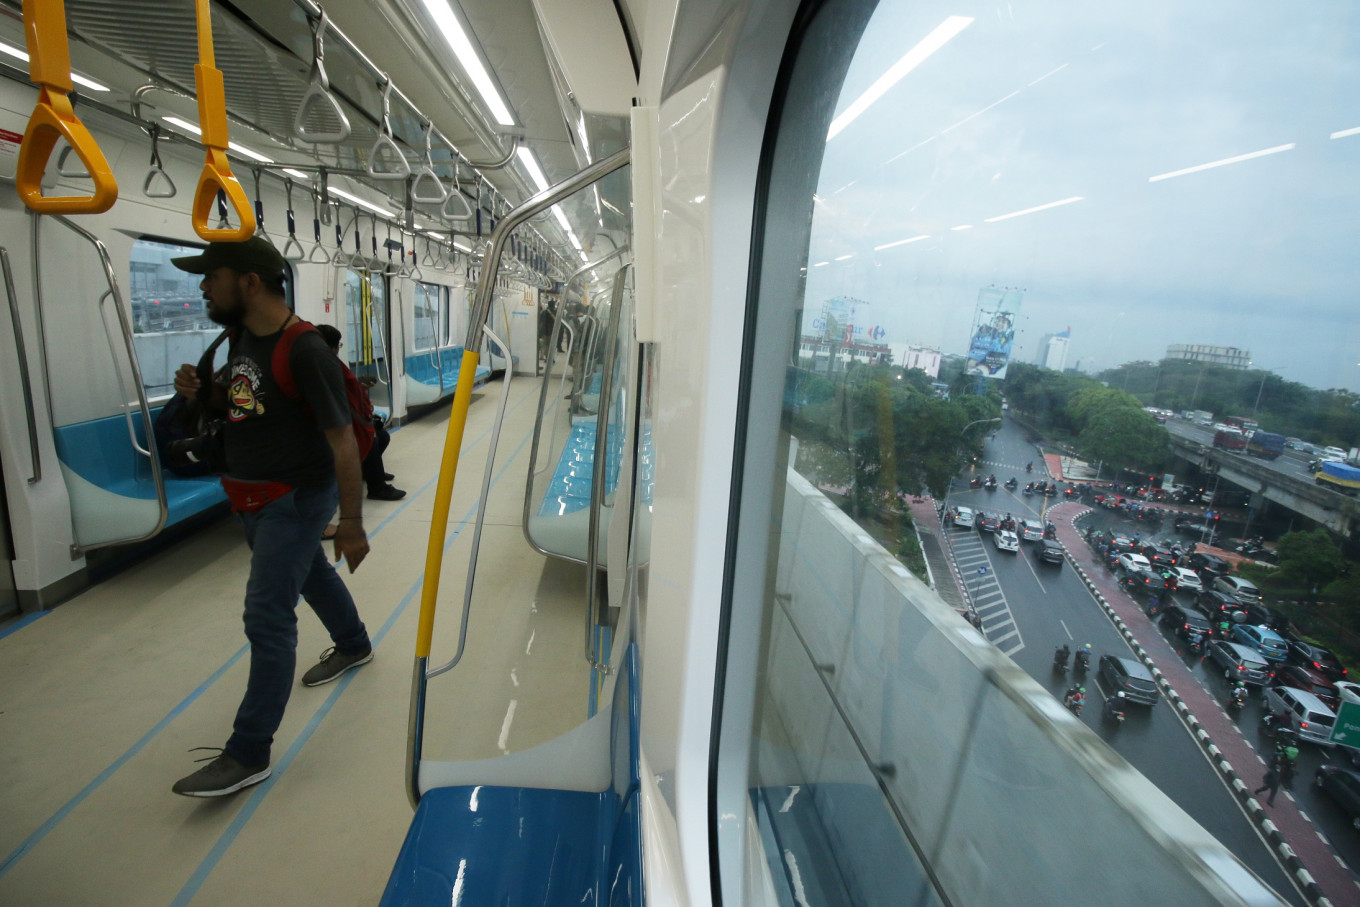 Mrt Jakarta Gears Up For Passenger Safety City The Jakarta Post